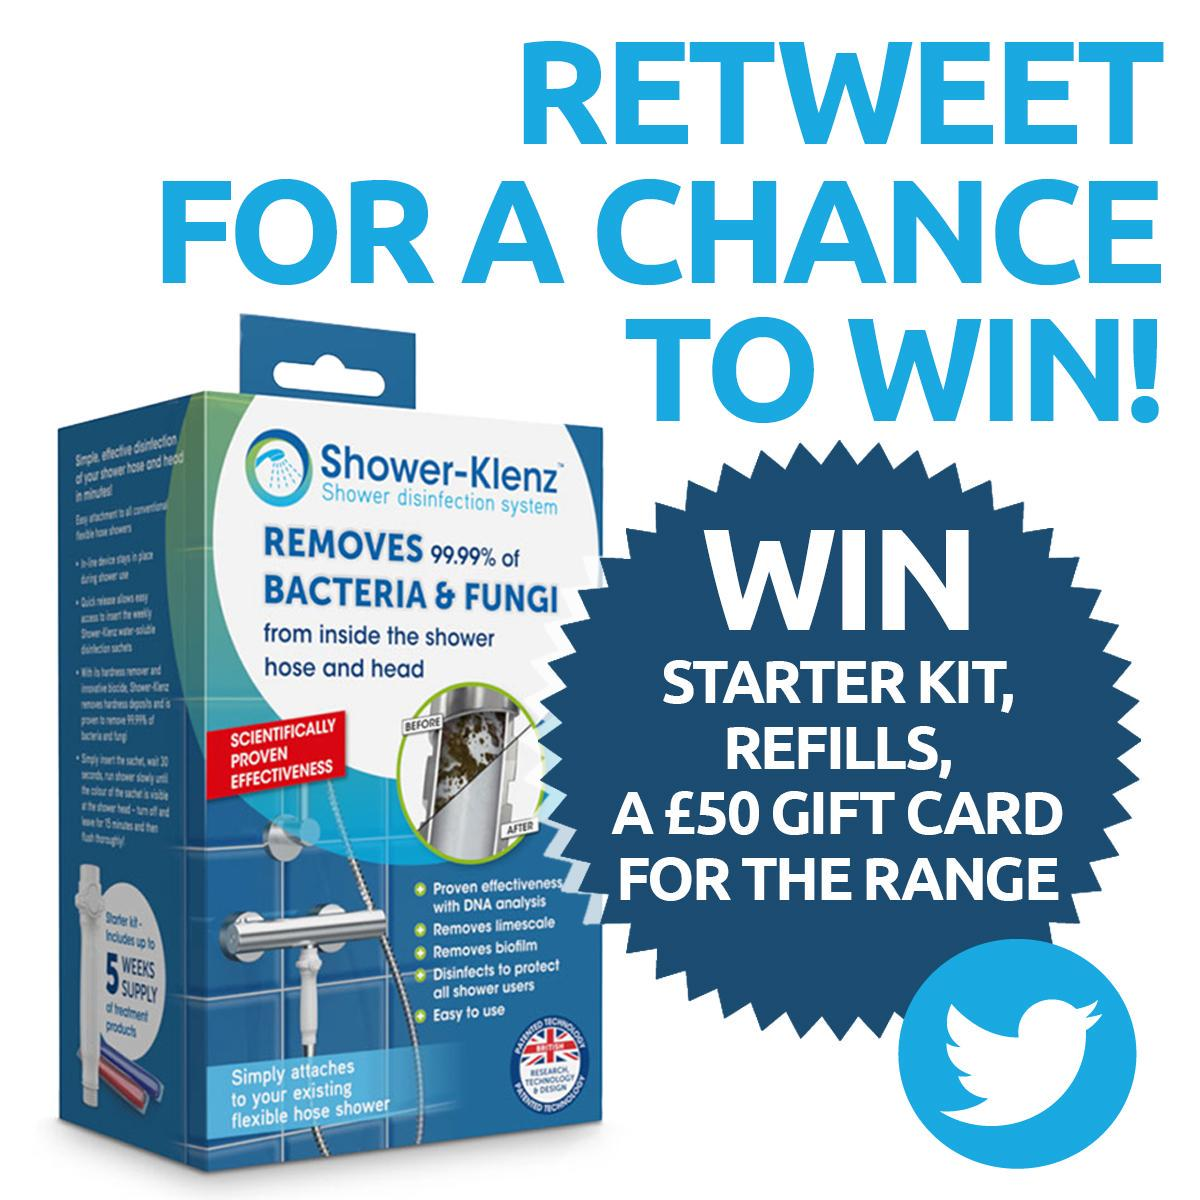 Kick start your #SpringClean with @ShowerKlenz and The Range! RT to win a Shower-Klenz Bundle. #competition #win http://t.co/8dimmSUOVN